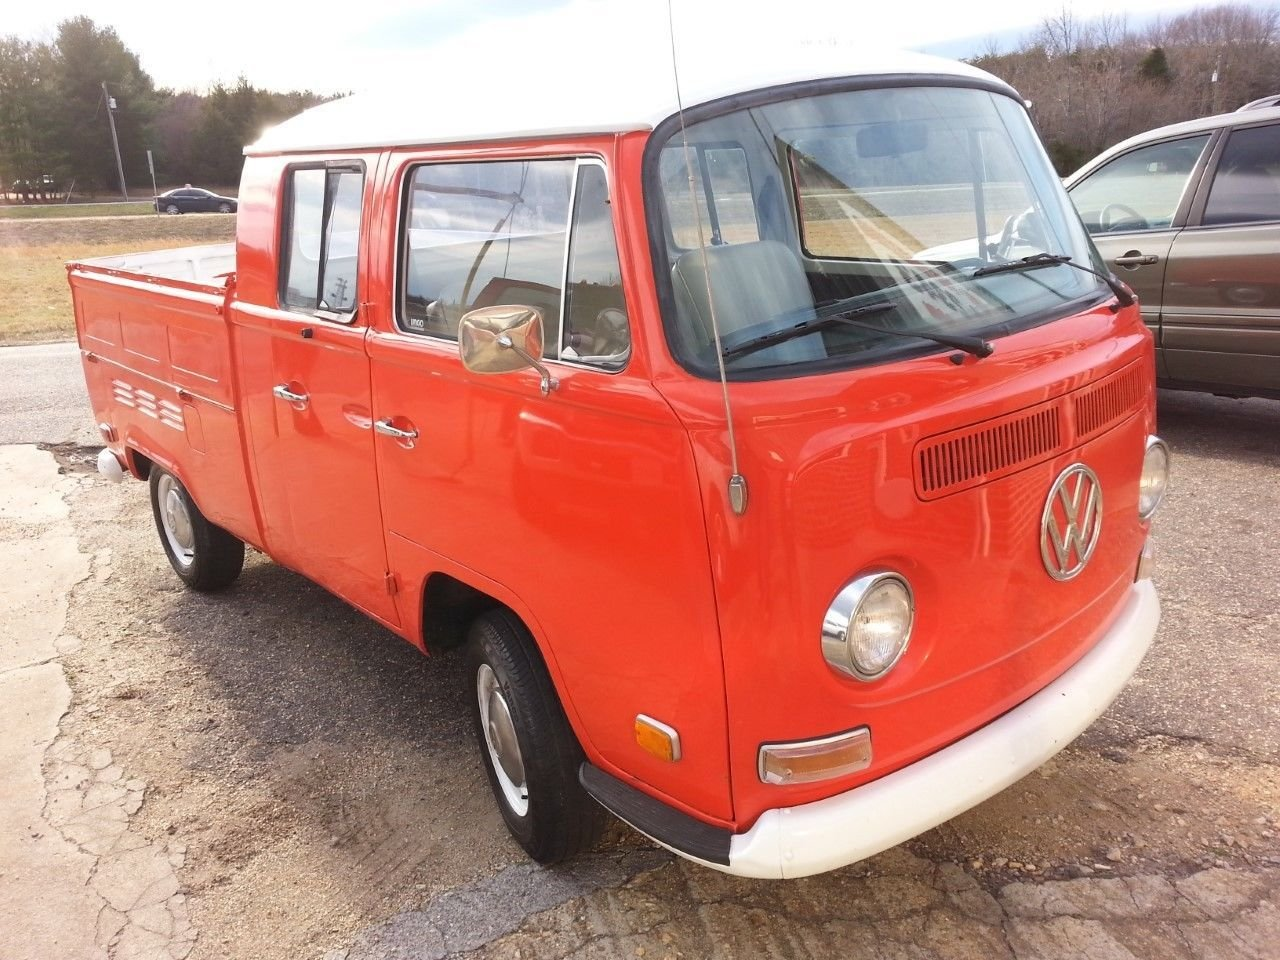 1971 Volkswagen Crew Cab Pick-Up Truck